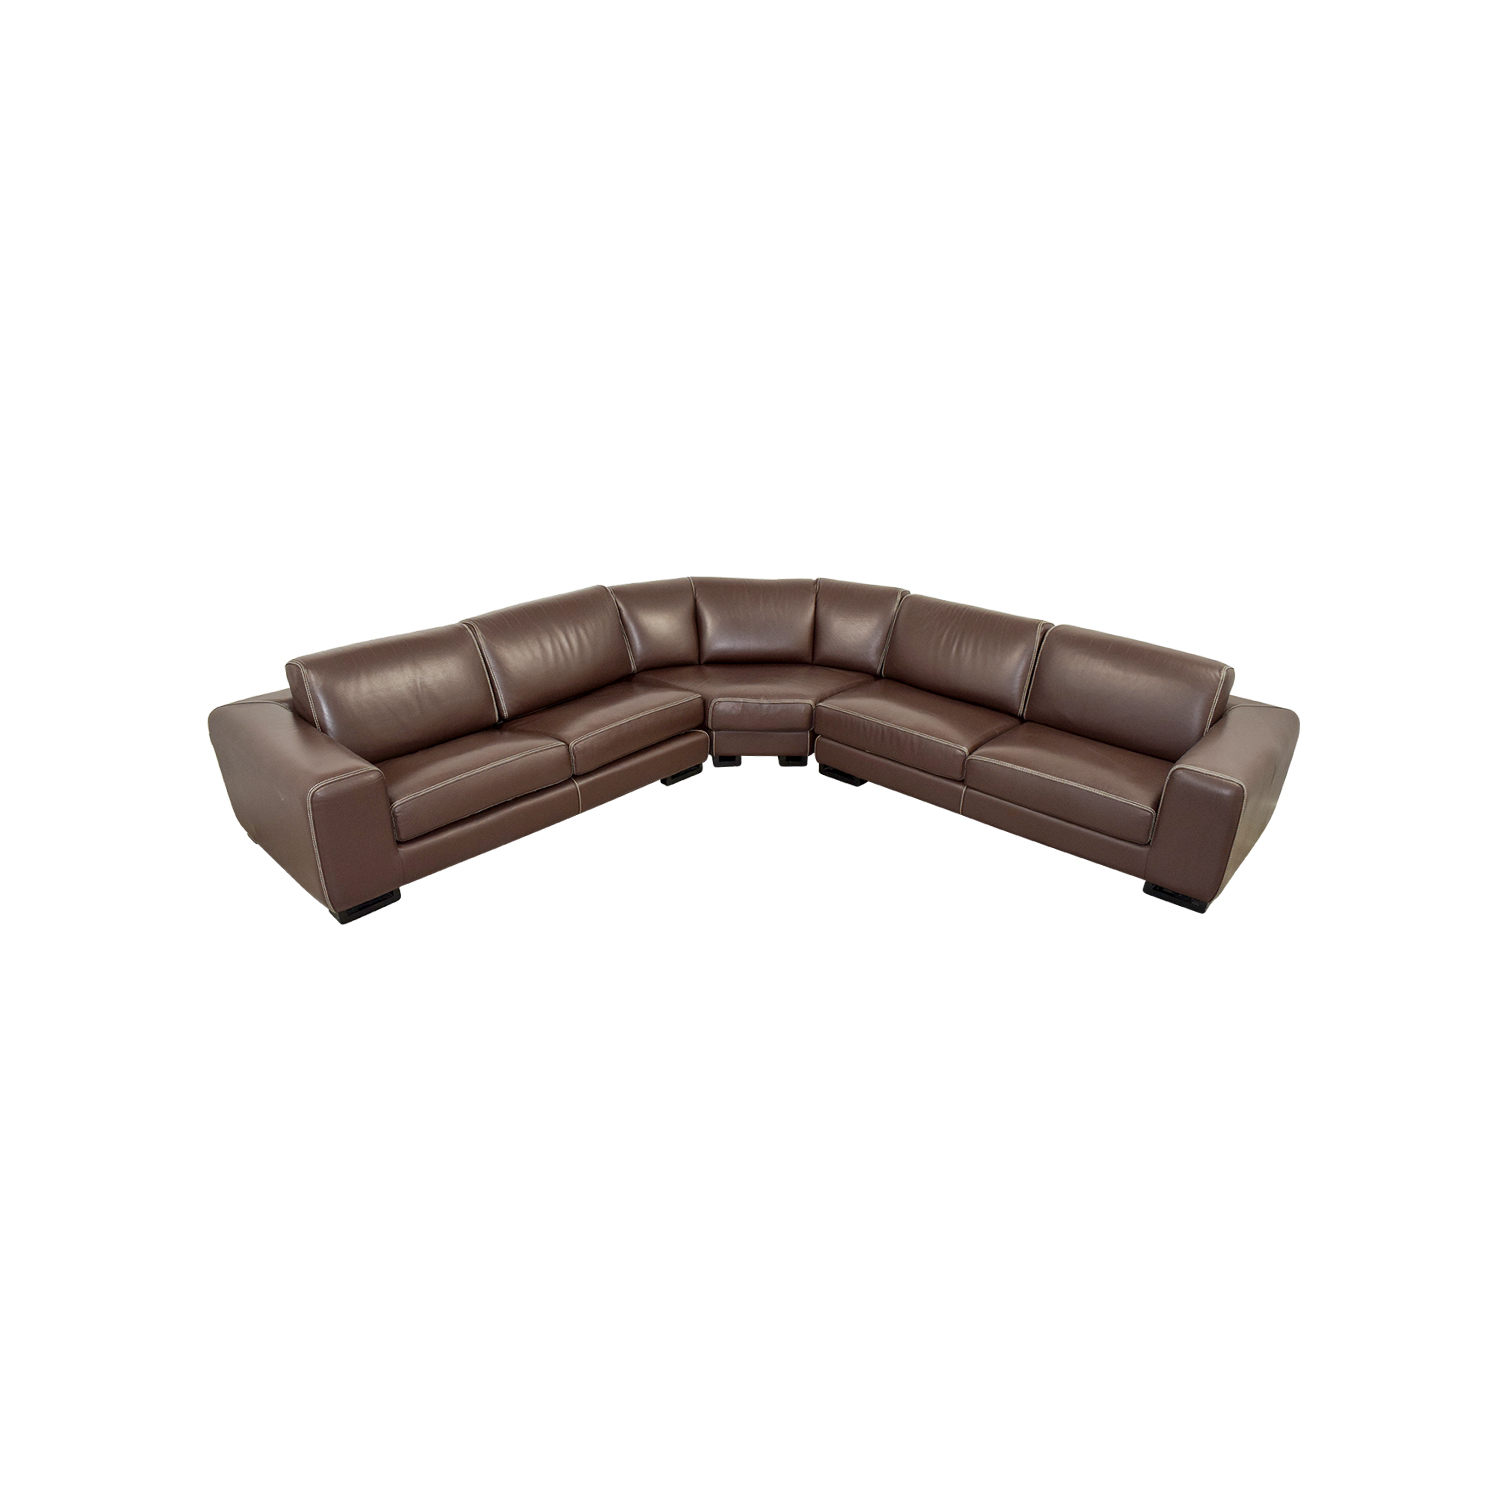 Roche Bobois Roche Bobois Brown Leather Sectional Sofa Bed for sale